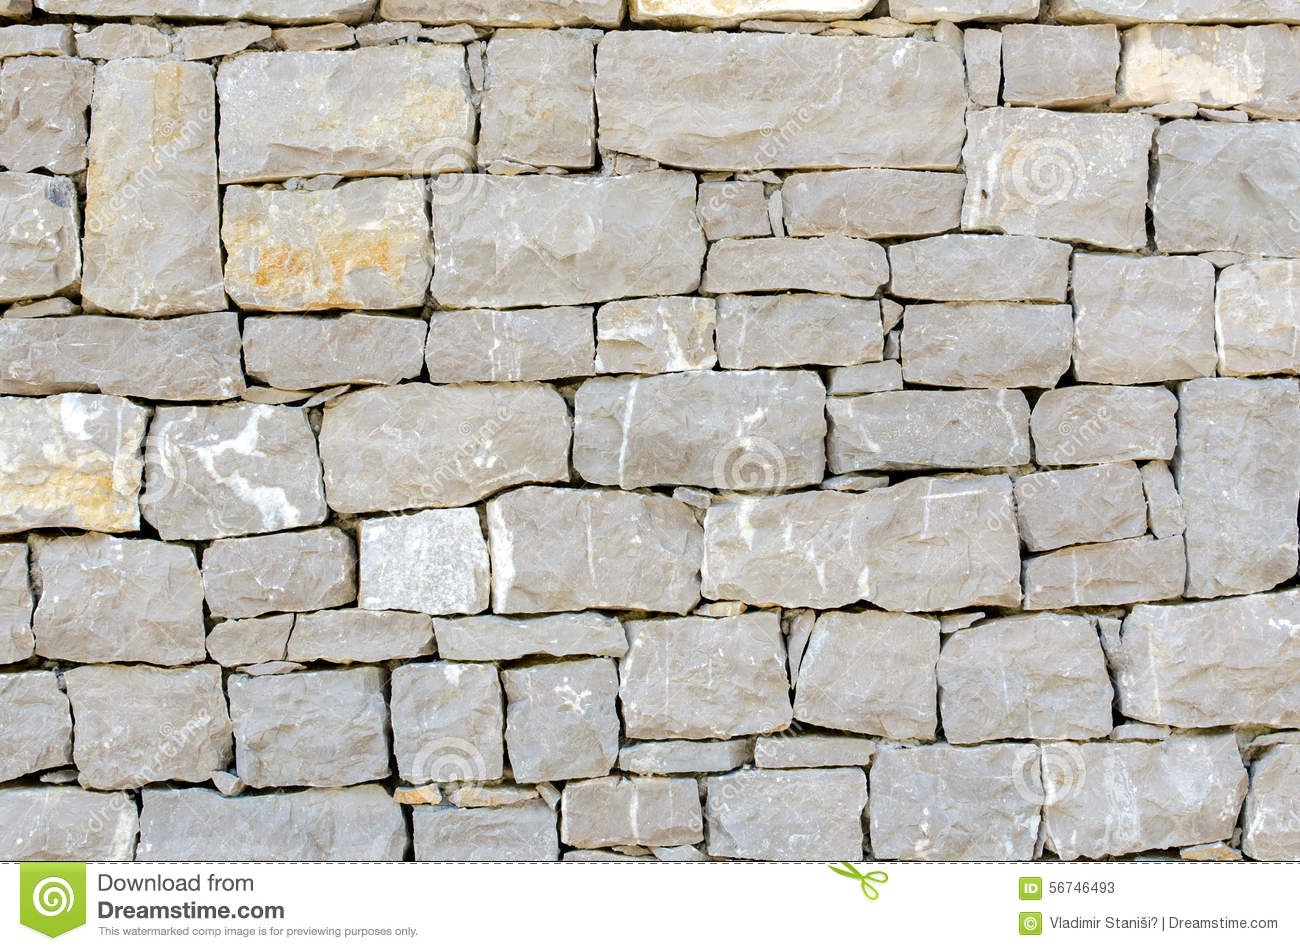 Stone facade texture stock image. Image of natural, flooring ...